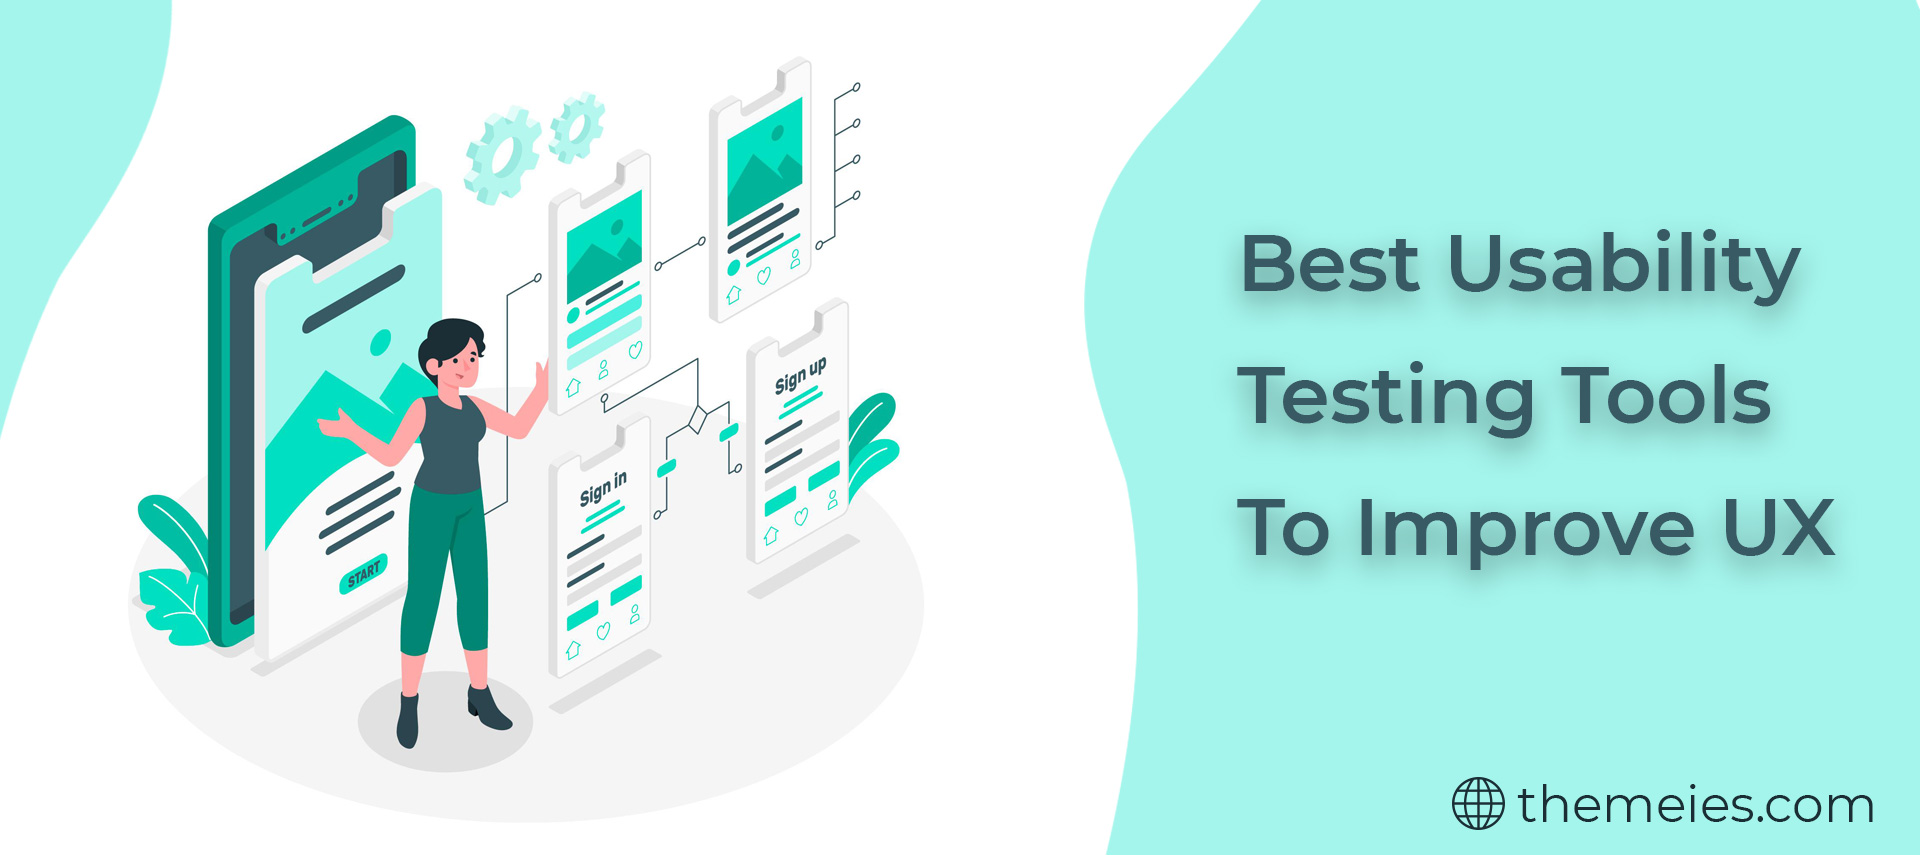 Best Usability Testing Tools To Improve UX